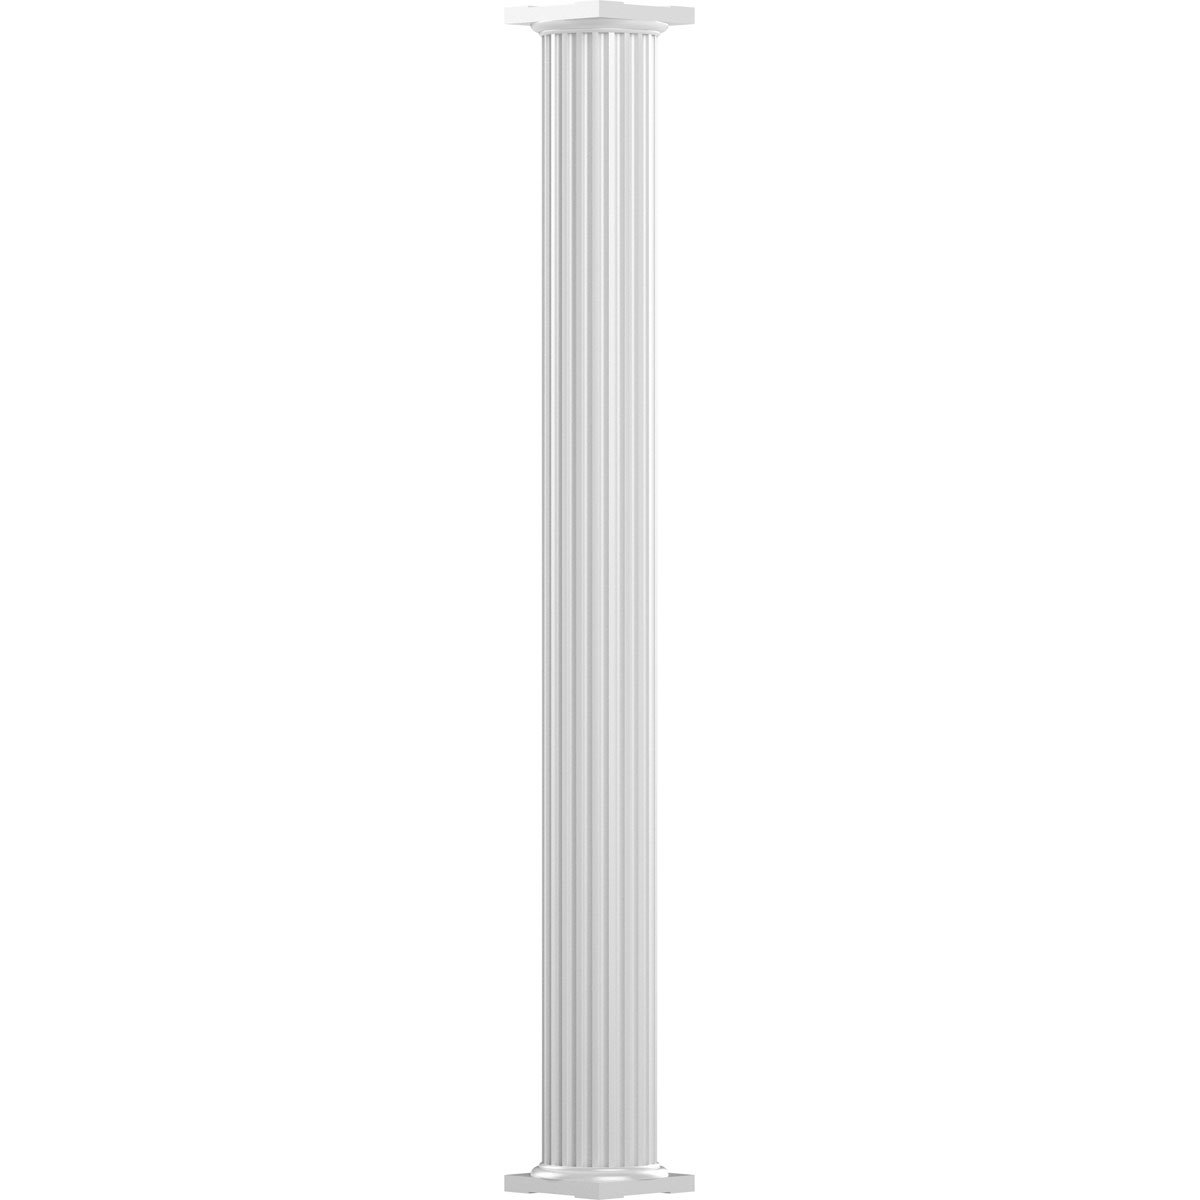 AFCO EA0810ANFSATUTU 8'' x 10' Endura-Aluminum Column, Round Shaft (Load-Bearing 21,000 lbs), Non-Tapered, Fluted, Gloss White Finish w/ Capital & Base by Afco